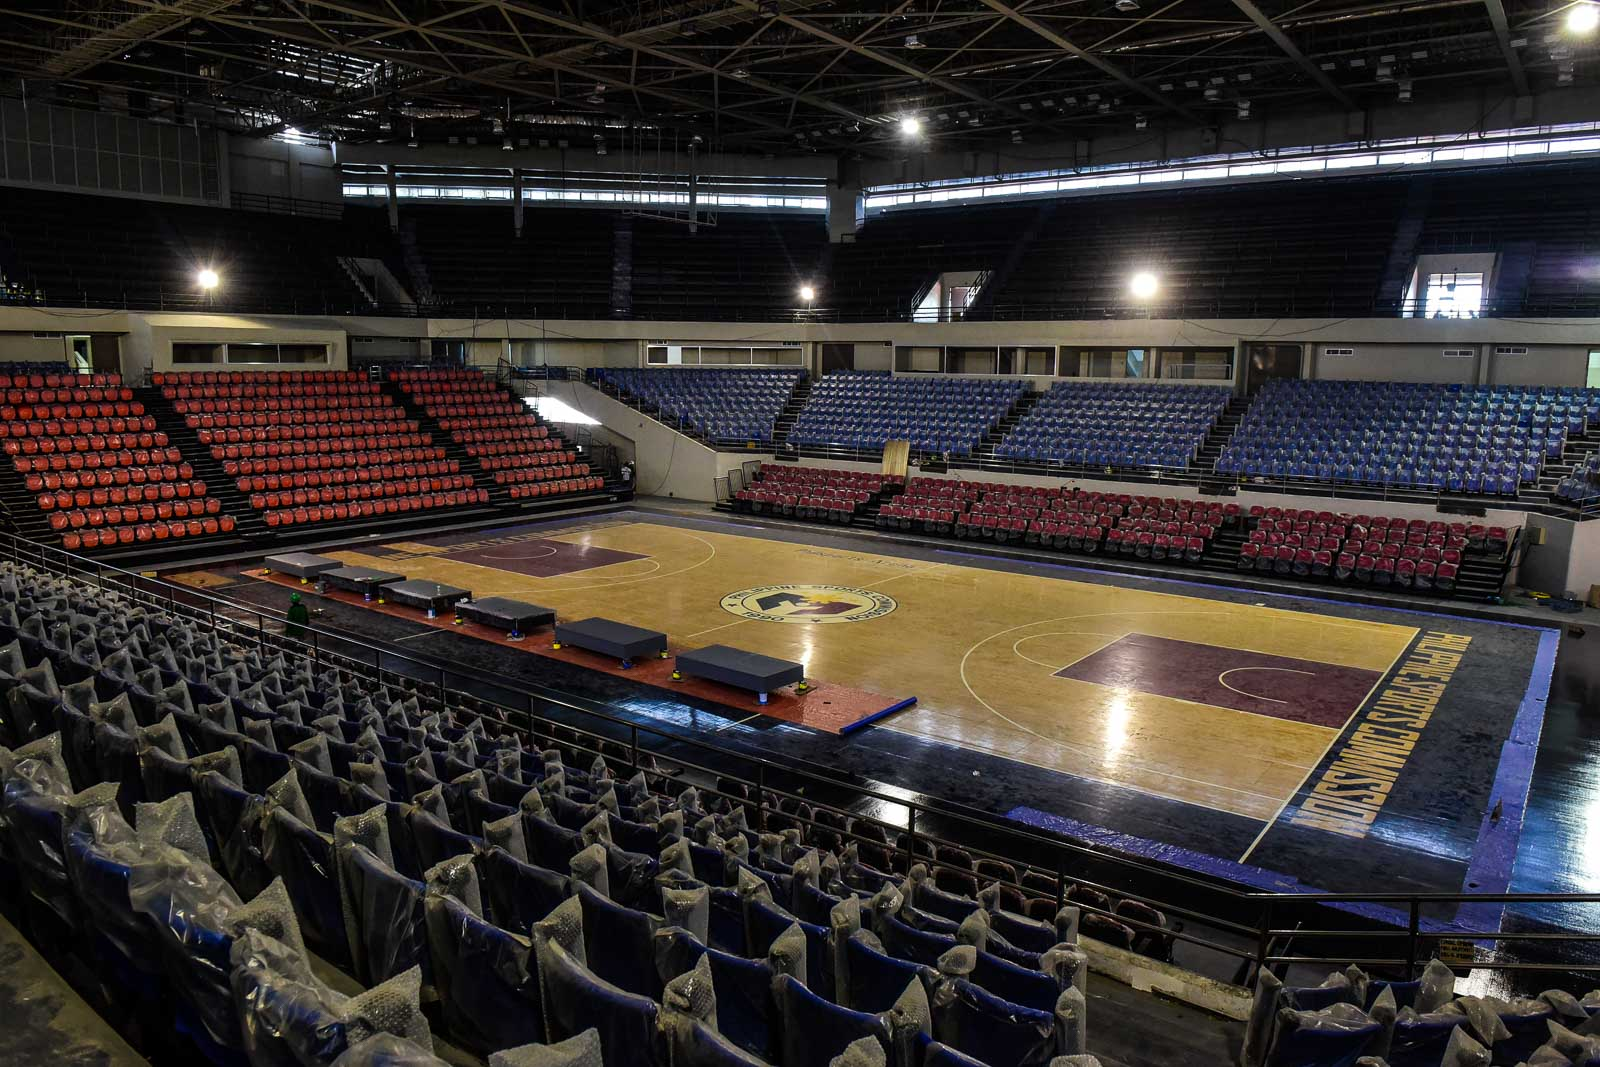 FINAL POLISH. The stadium seats, though, look brand new and the court seems ready for the final touches. Photo by LeAnne Jazul/Rappler